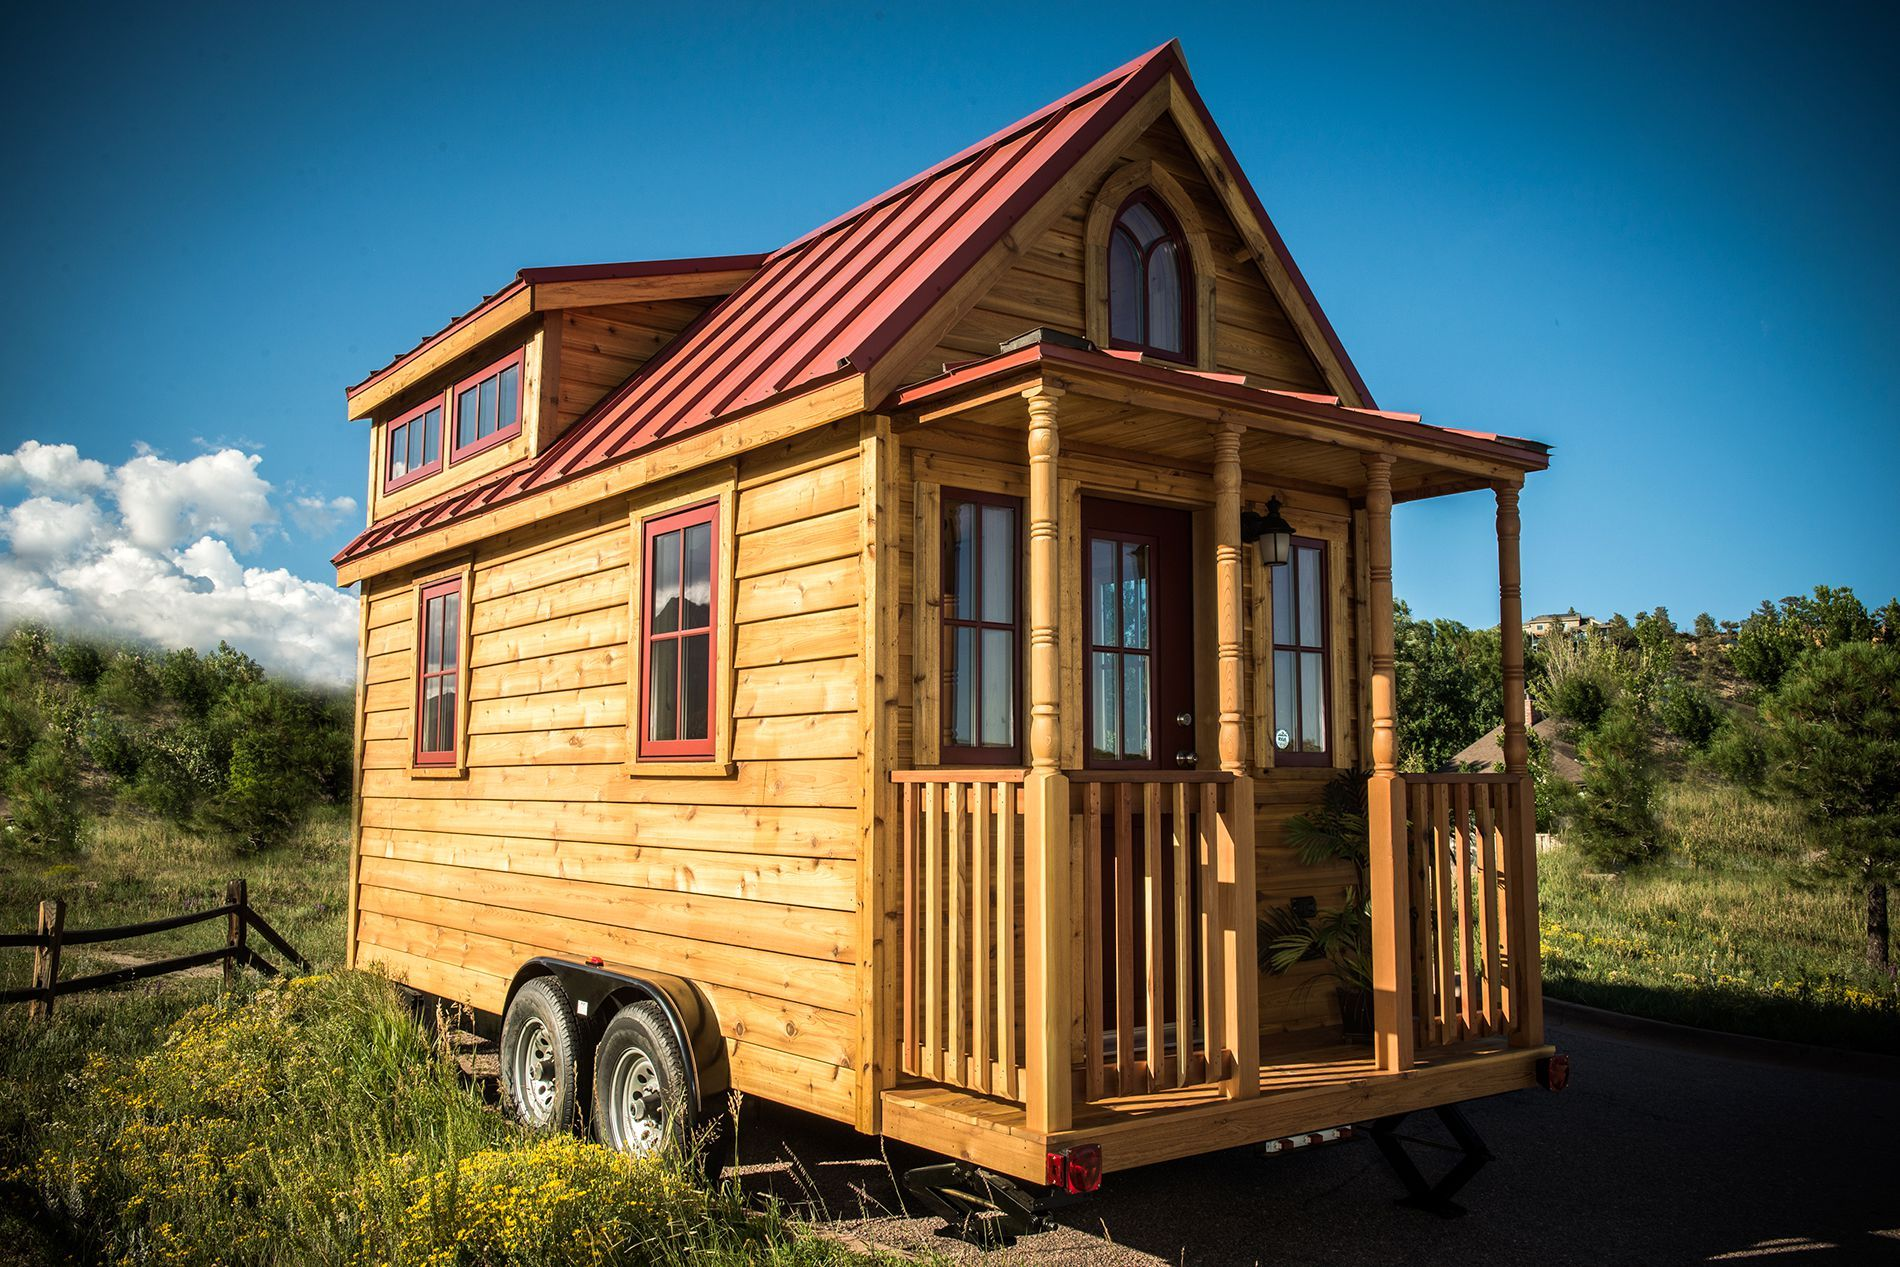 Pin By Michael Janzen On Tiny House Living In 2019 Tiny